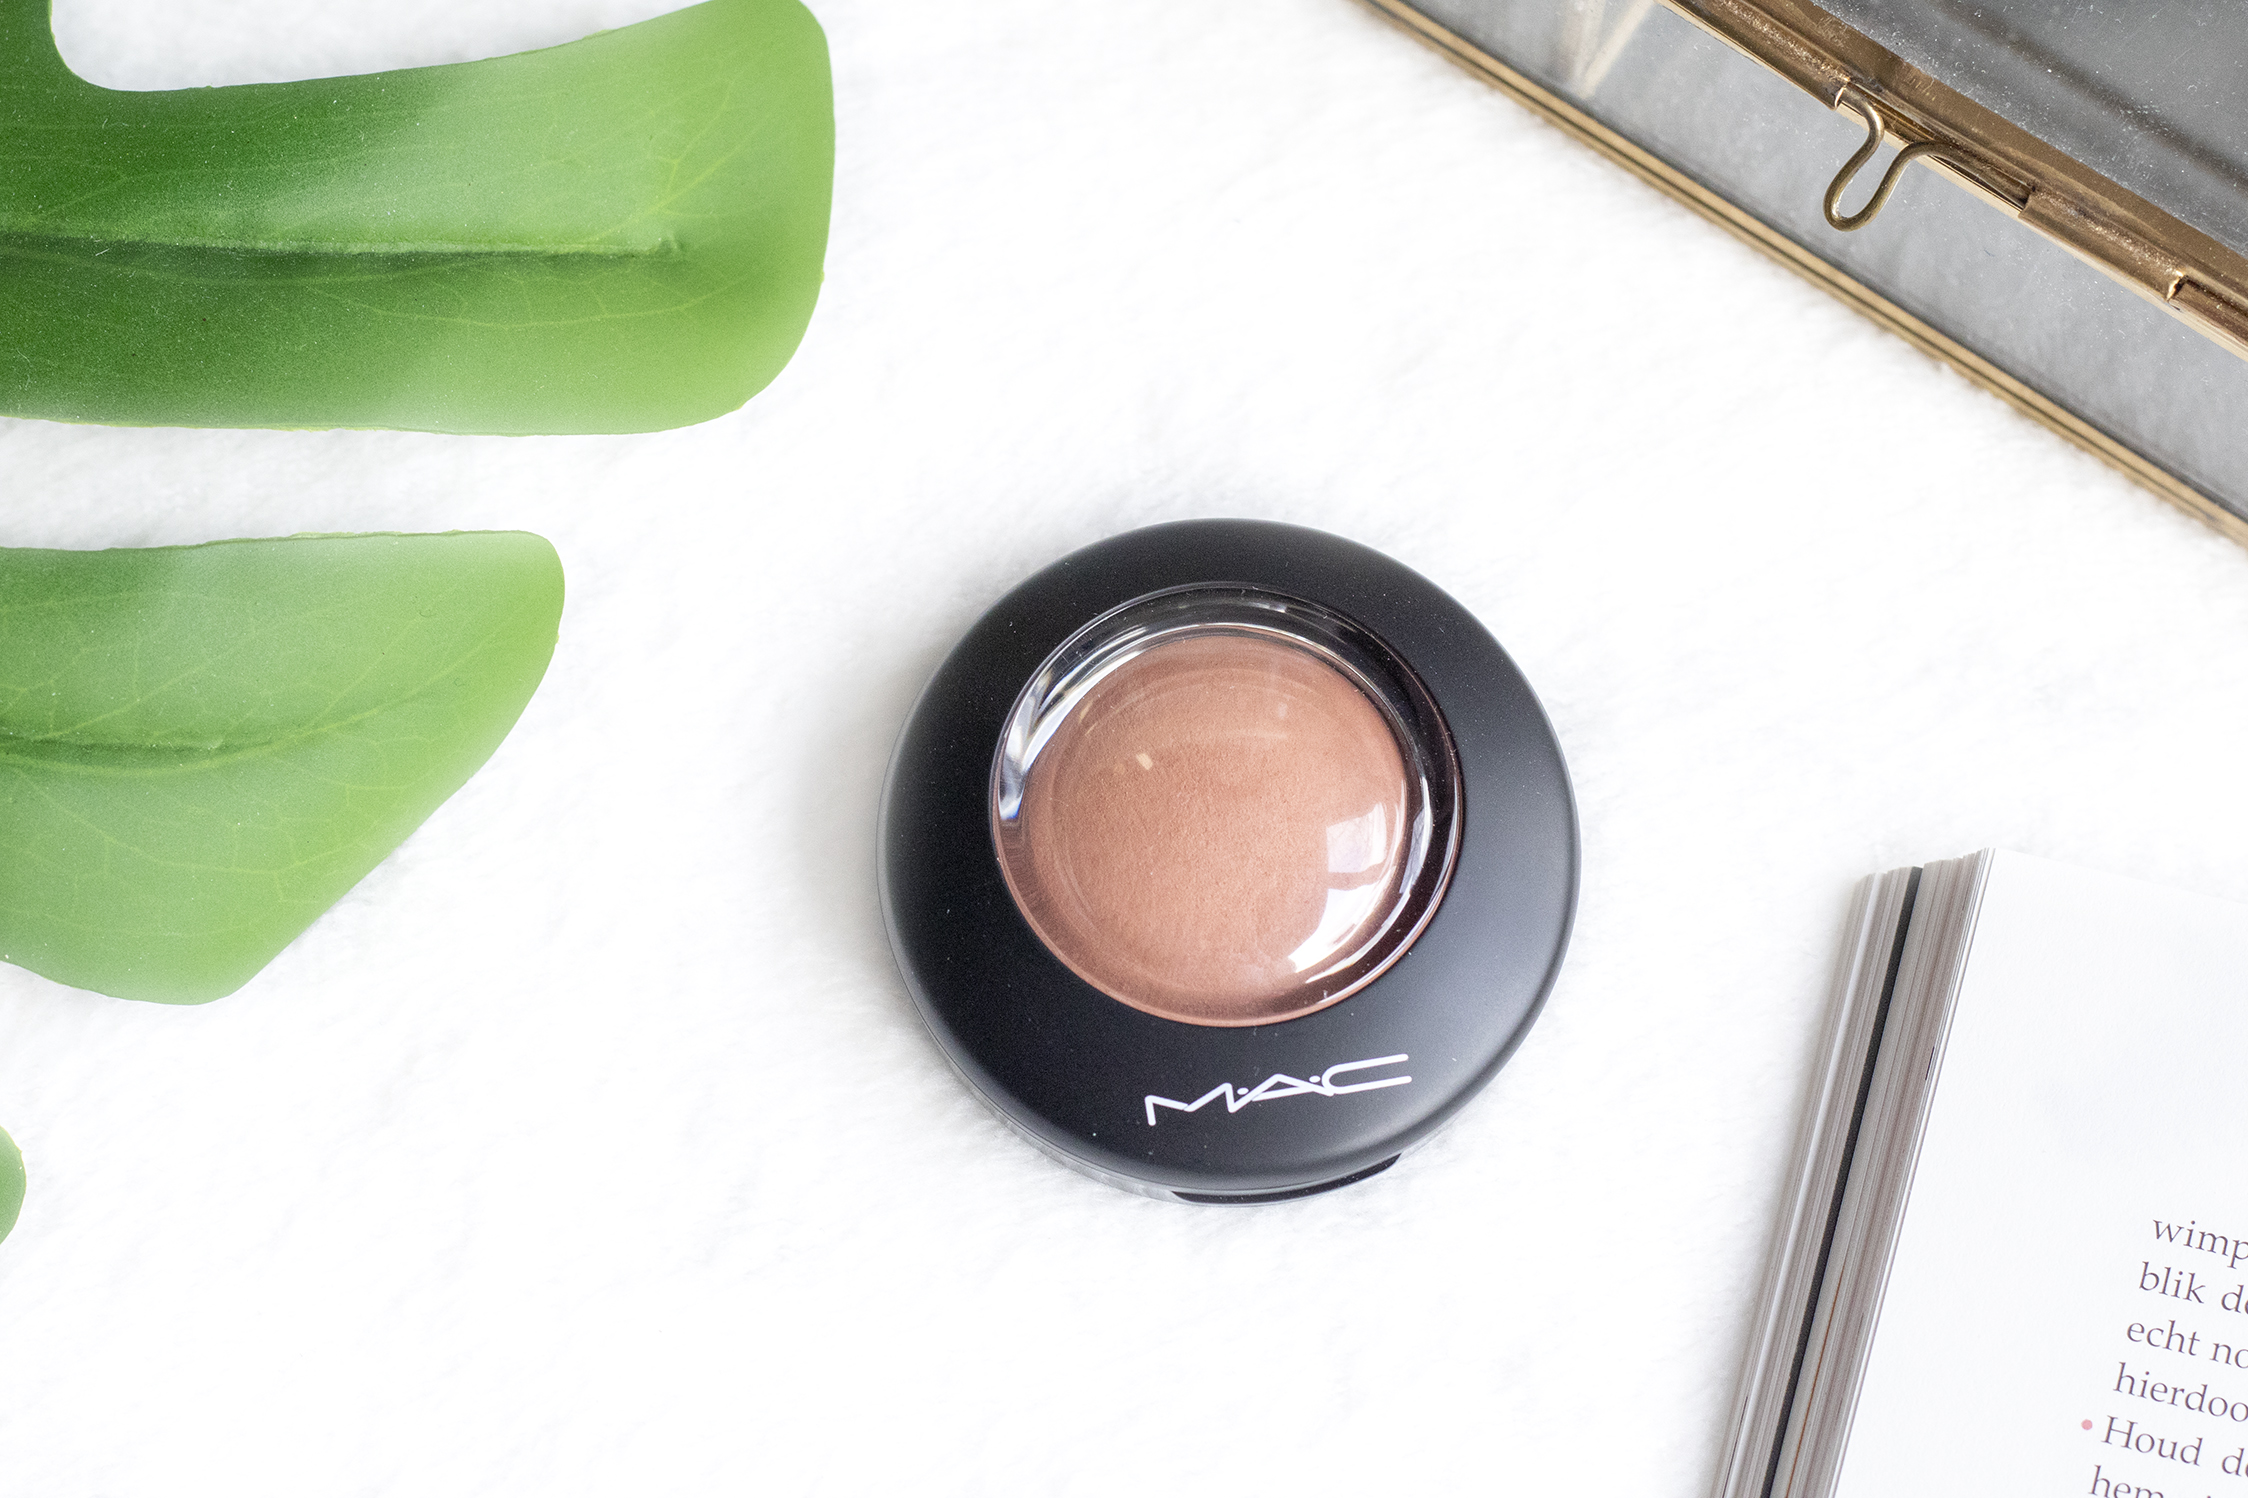 M.A.C Mineralize Blush Naturally Flawless review